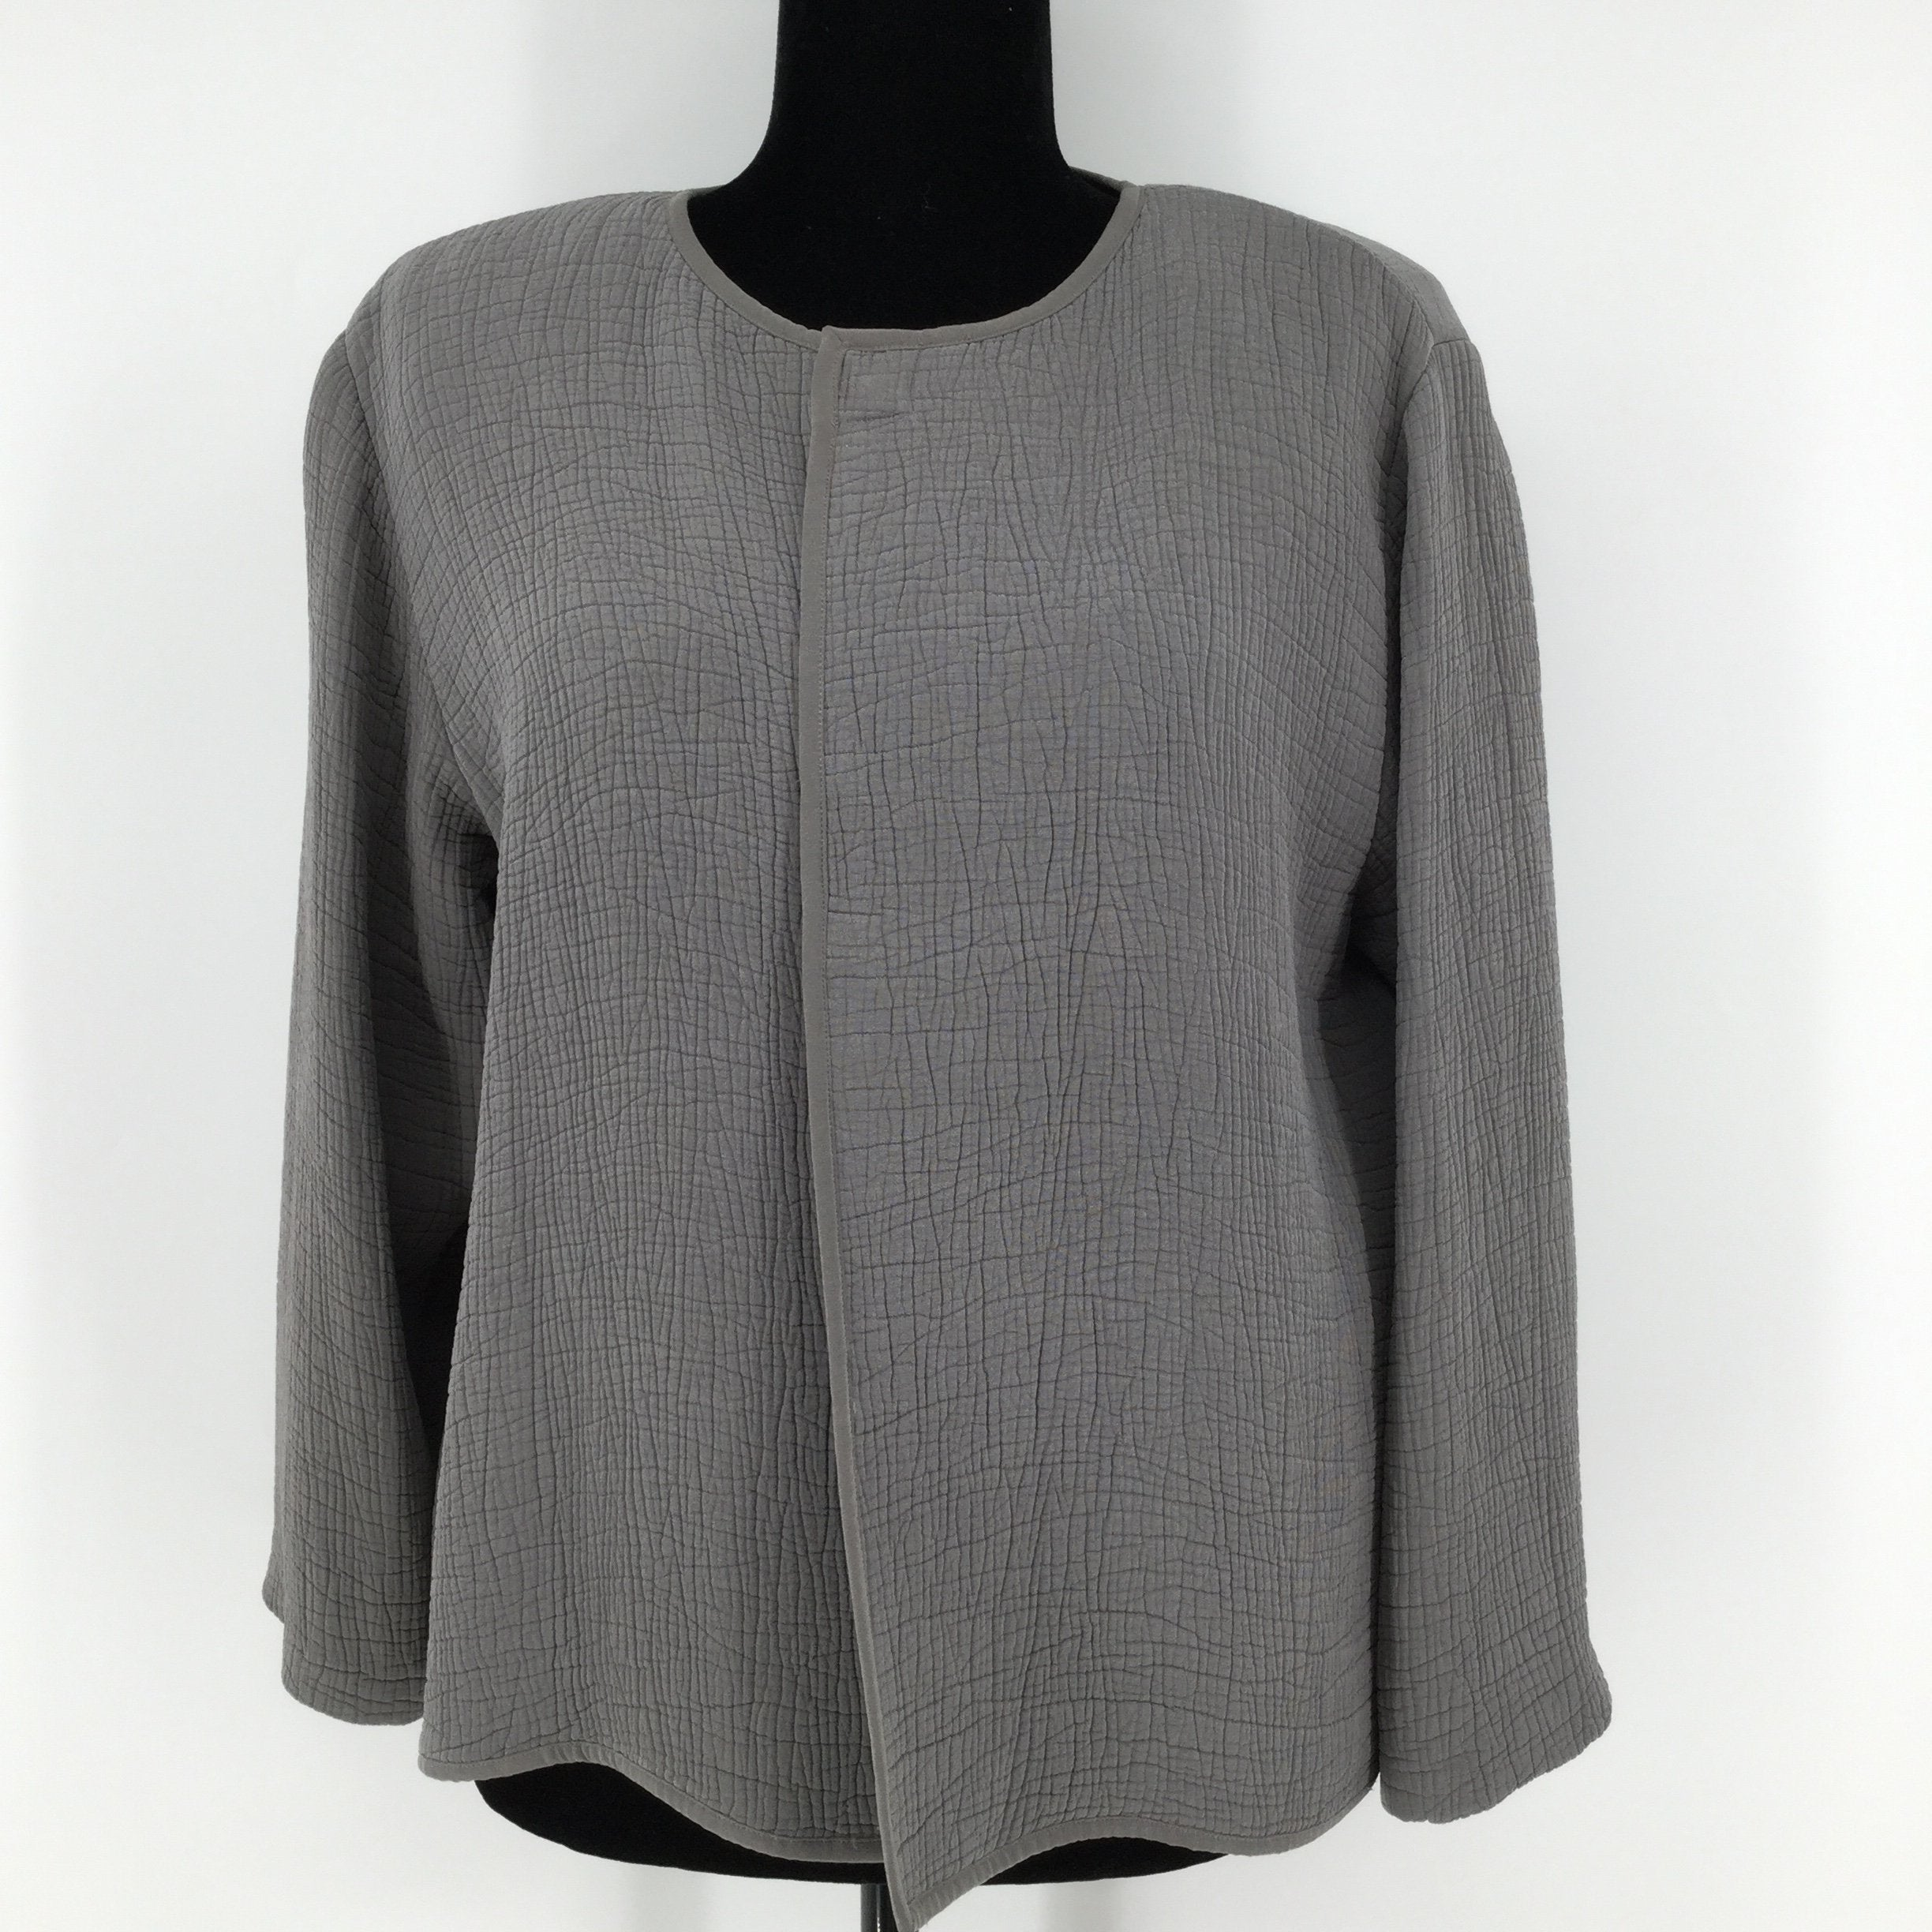 Eileen Fisher Blazer, Grey, Size: Medium - <P>THIS EILEEN FISHER BLAZER IS IN VERY GOOD CONDITION. IT CLOSES WITH A MAGNET AT THE TOP AND HAS SHOULDER PADS INSIDE.</P>